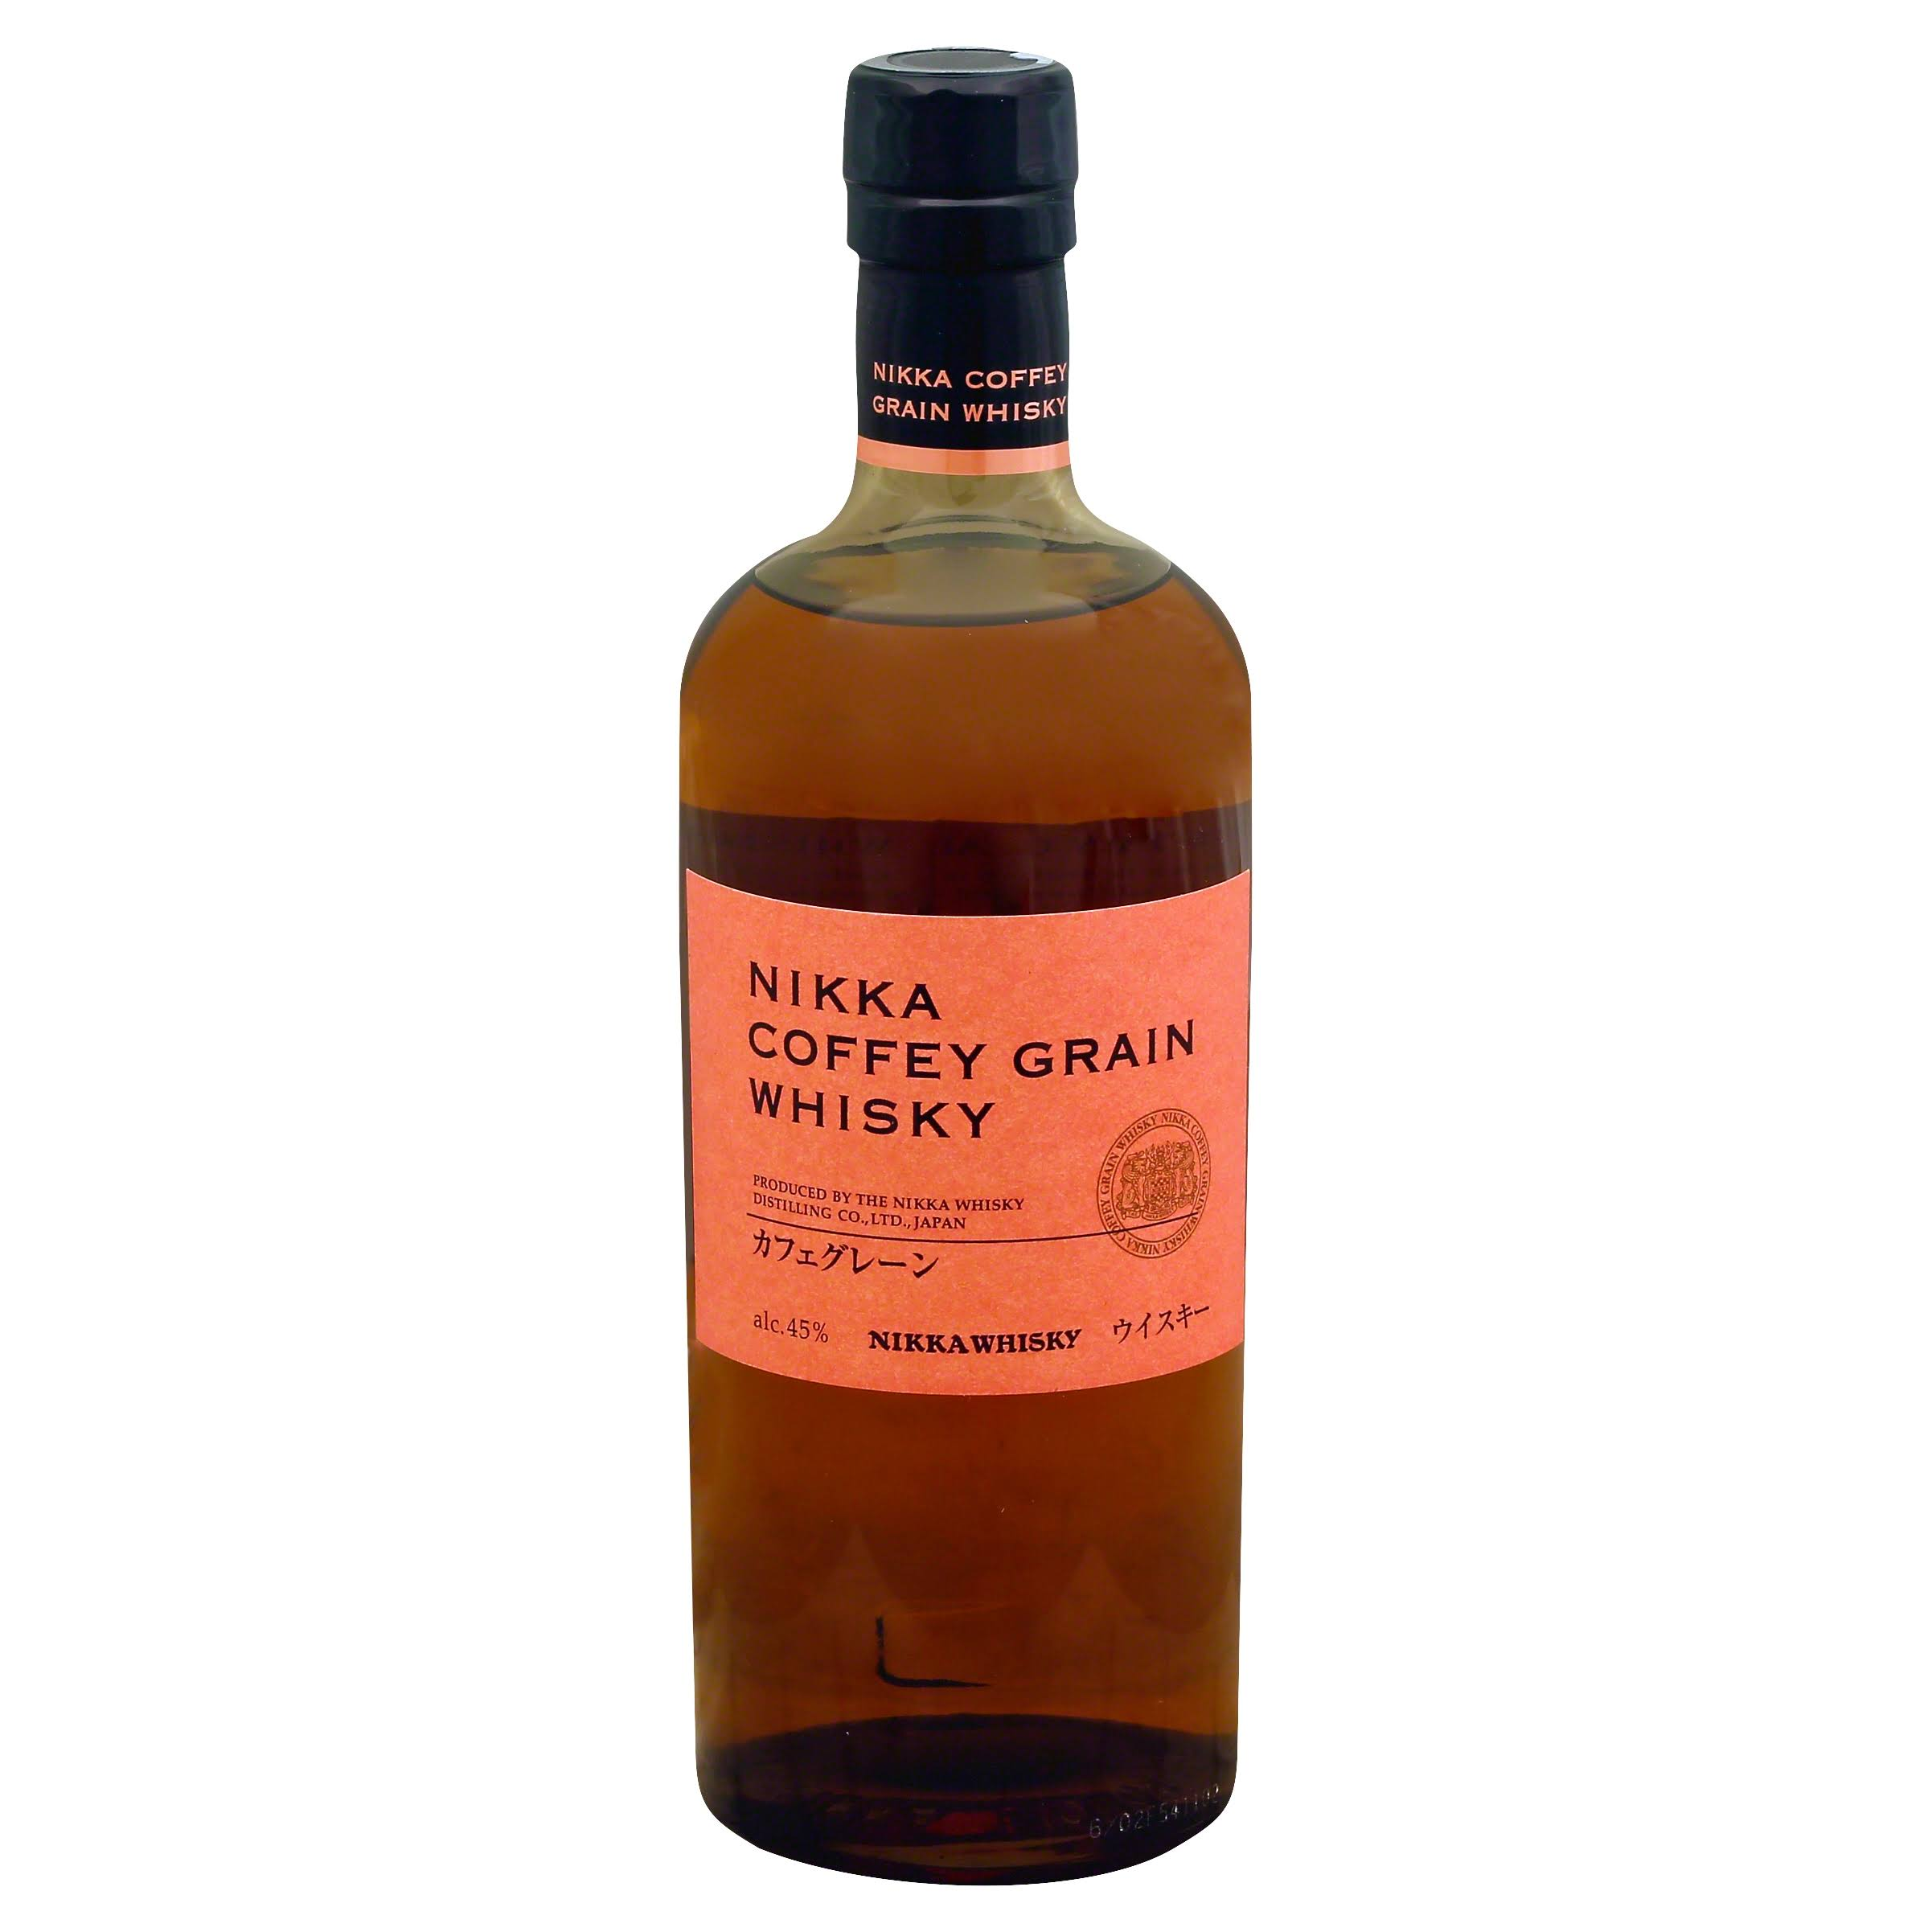 Nikka Coffey Grain Whisky - 750ml